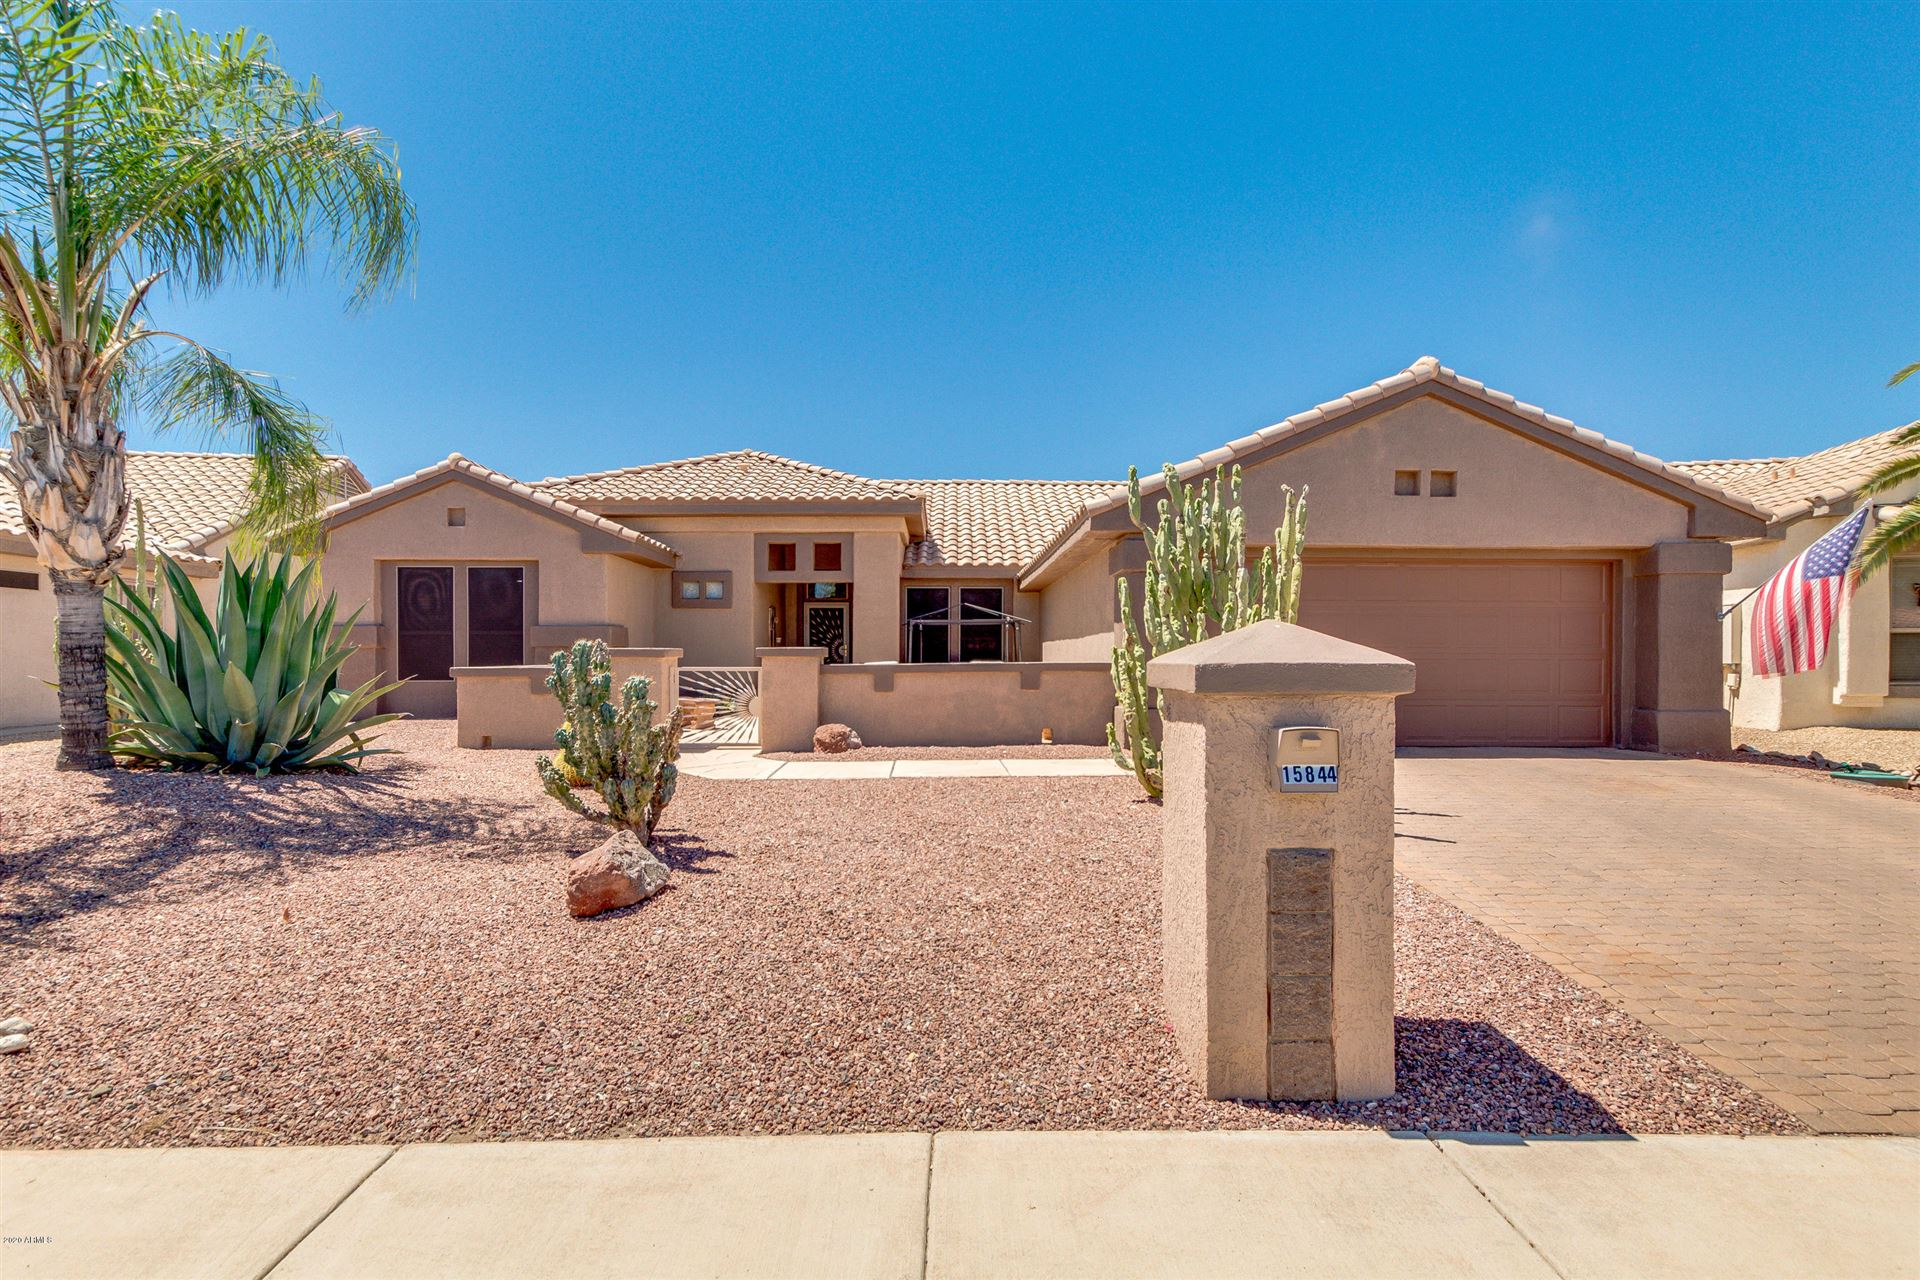 15844 W WILDFLOWER Drive, Surprise, AZ 85374 - MLS#: 6086690